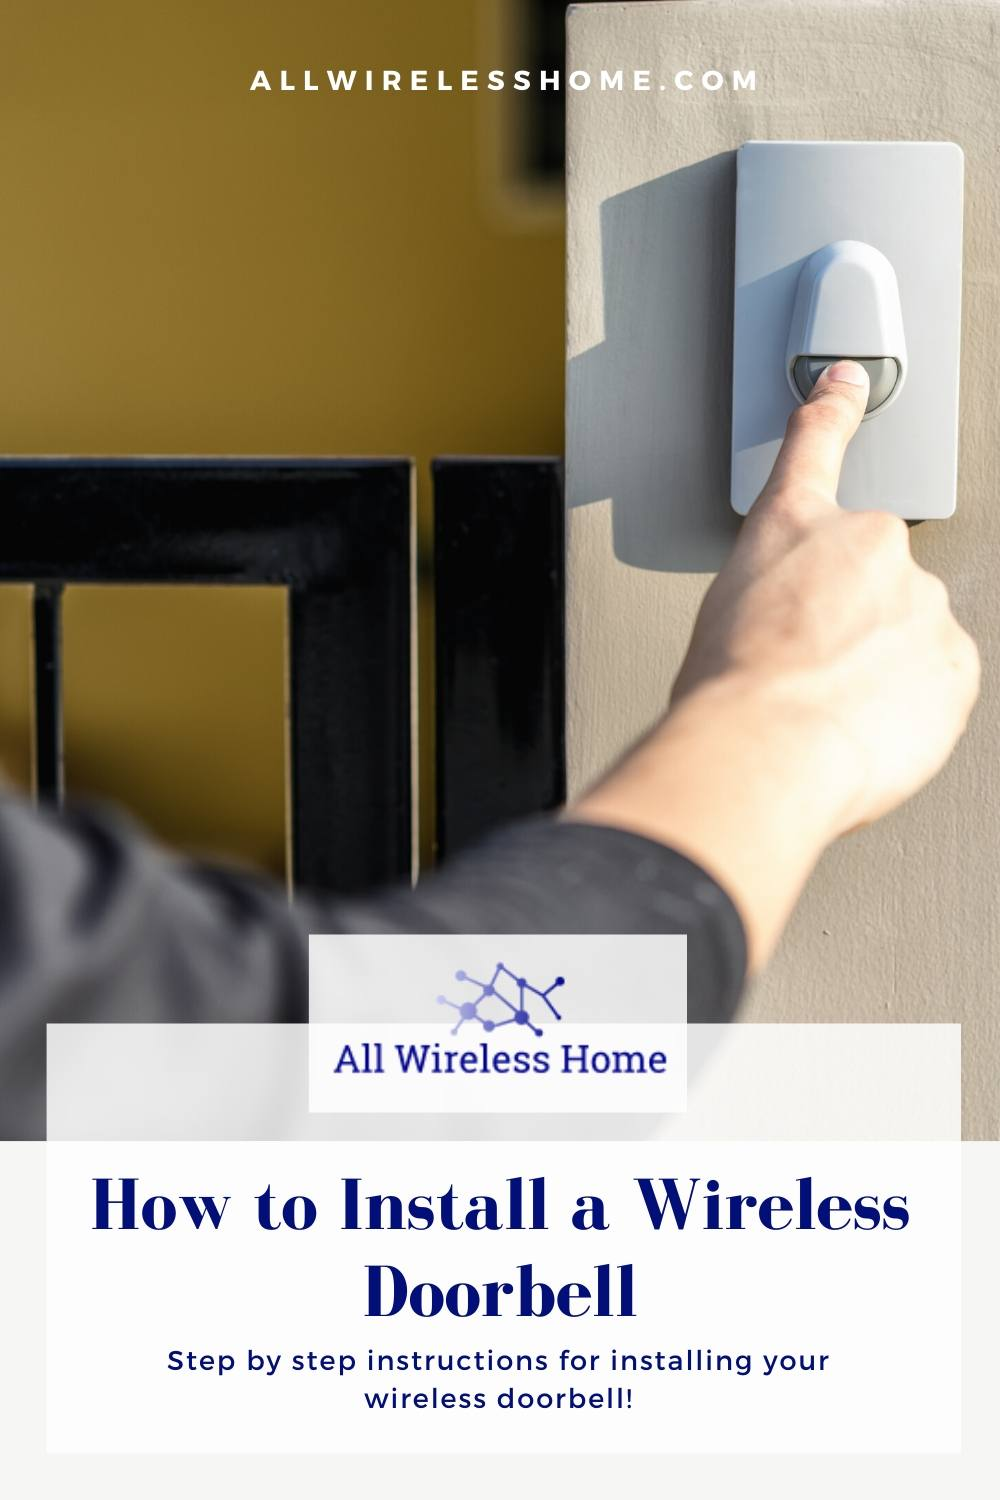 Howto Install a Wireless Doorbell